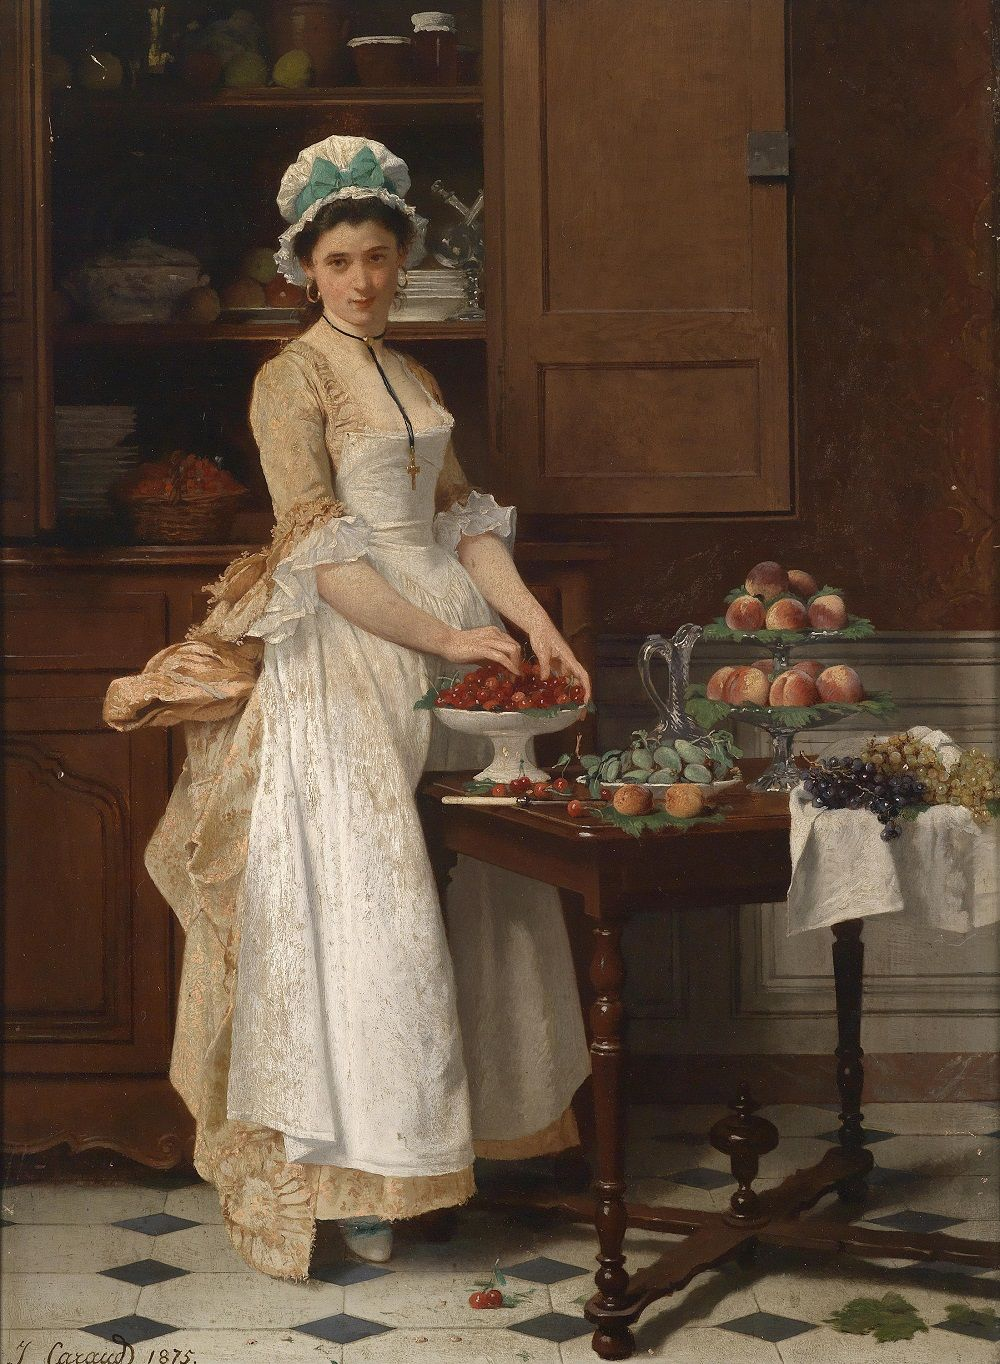 The Cherry Girl by Joseph Caraud 1875